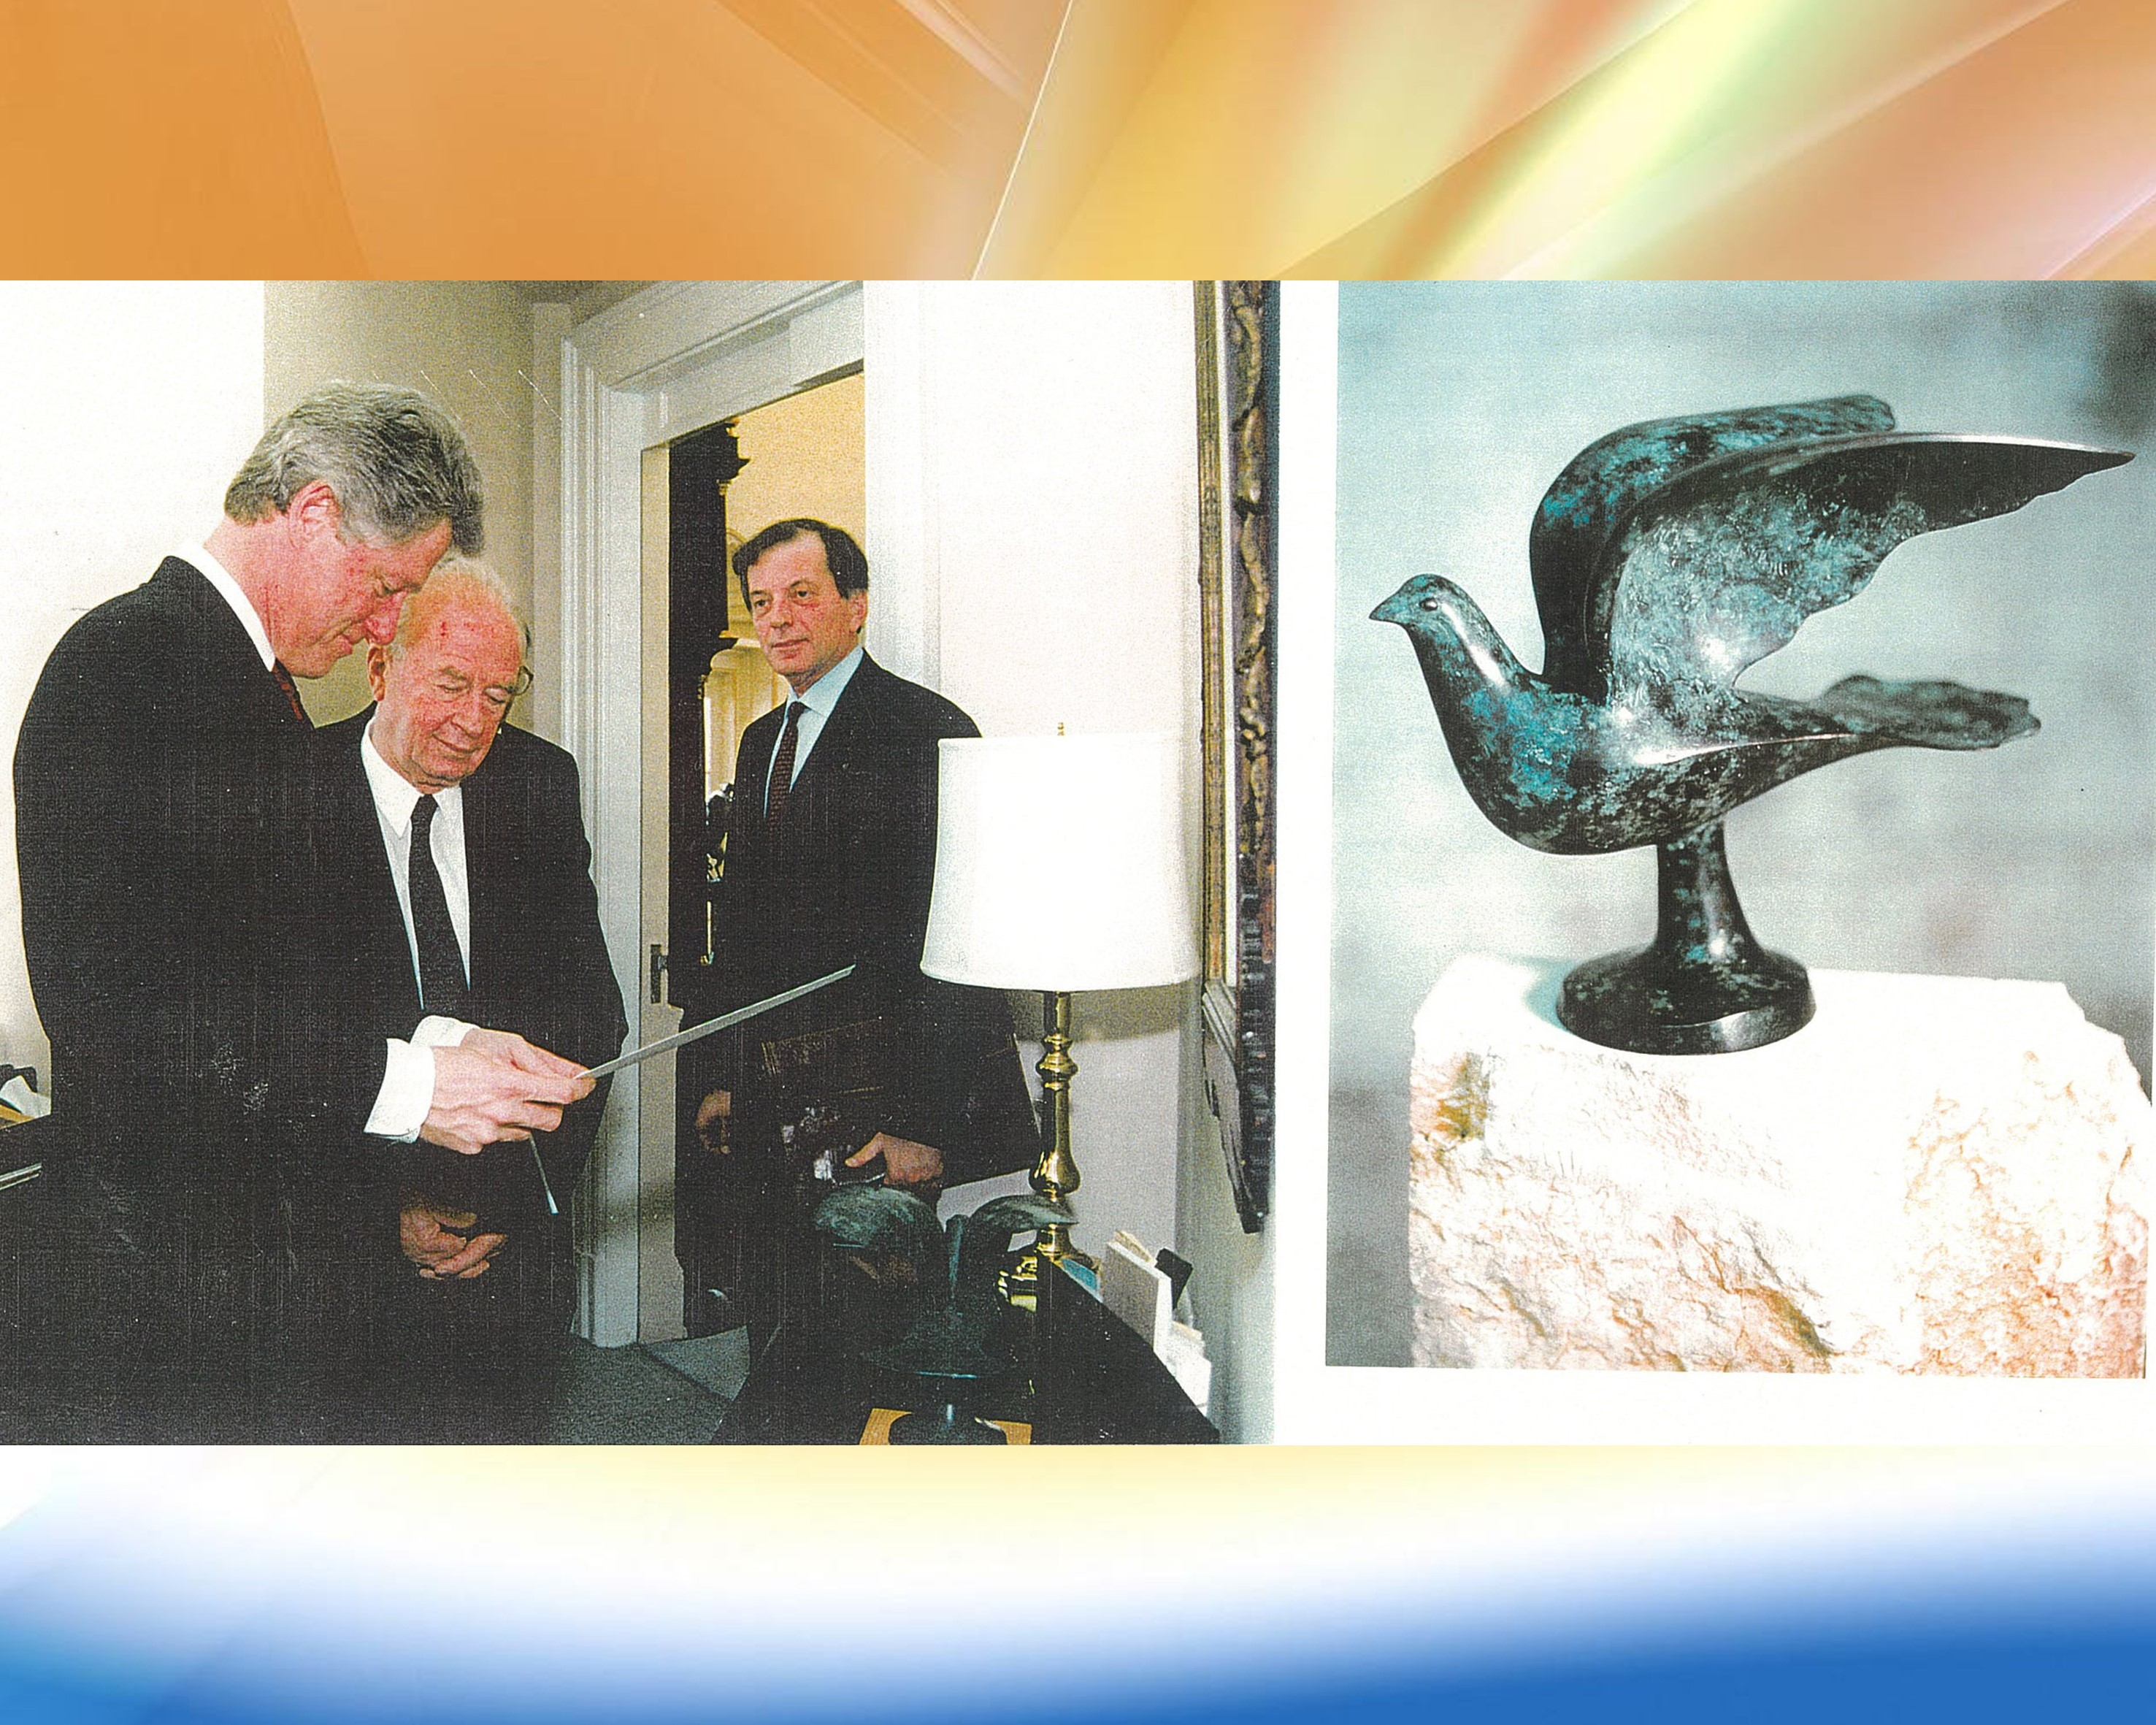 'The Dove of peace' given as a gift by Prime Minister Yitzhak Rabin to US President Bill Clinton